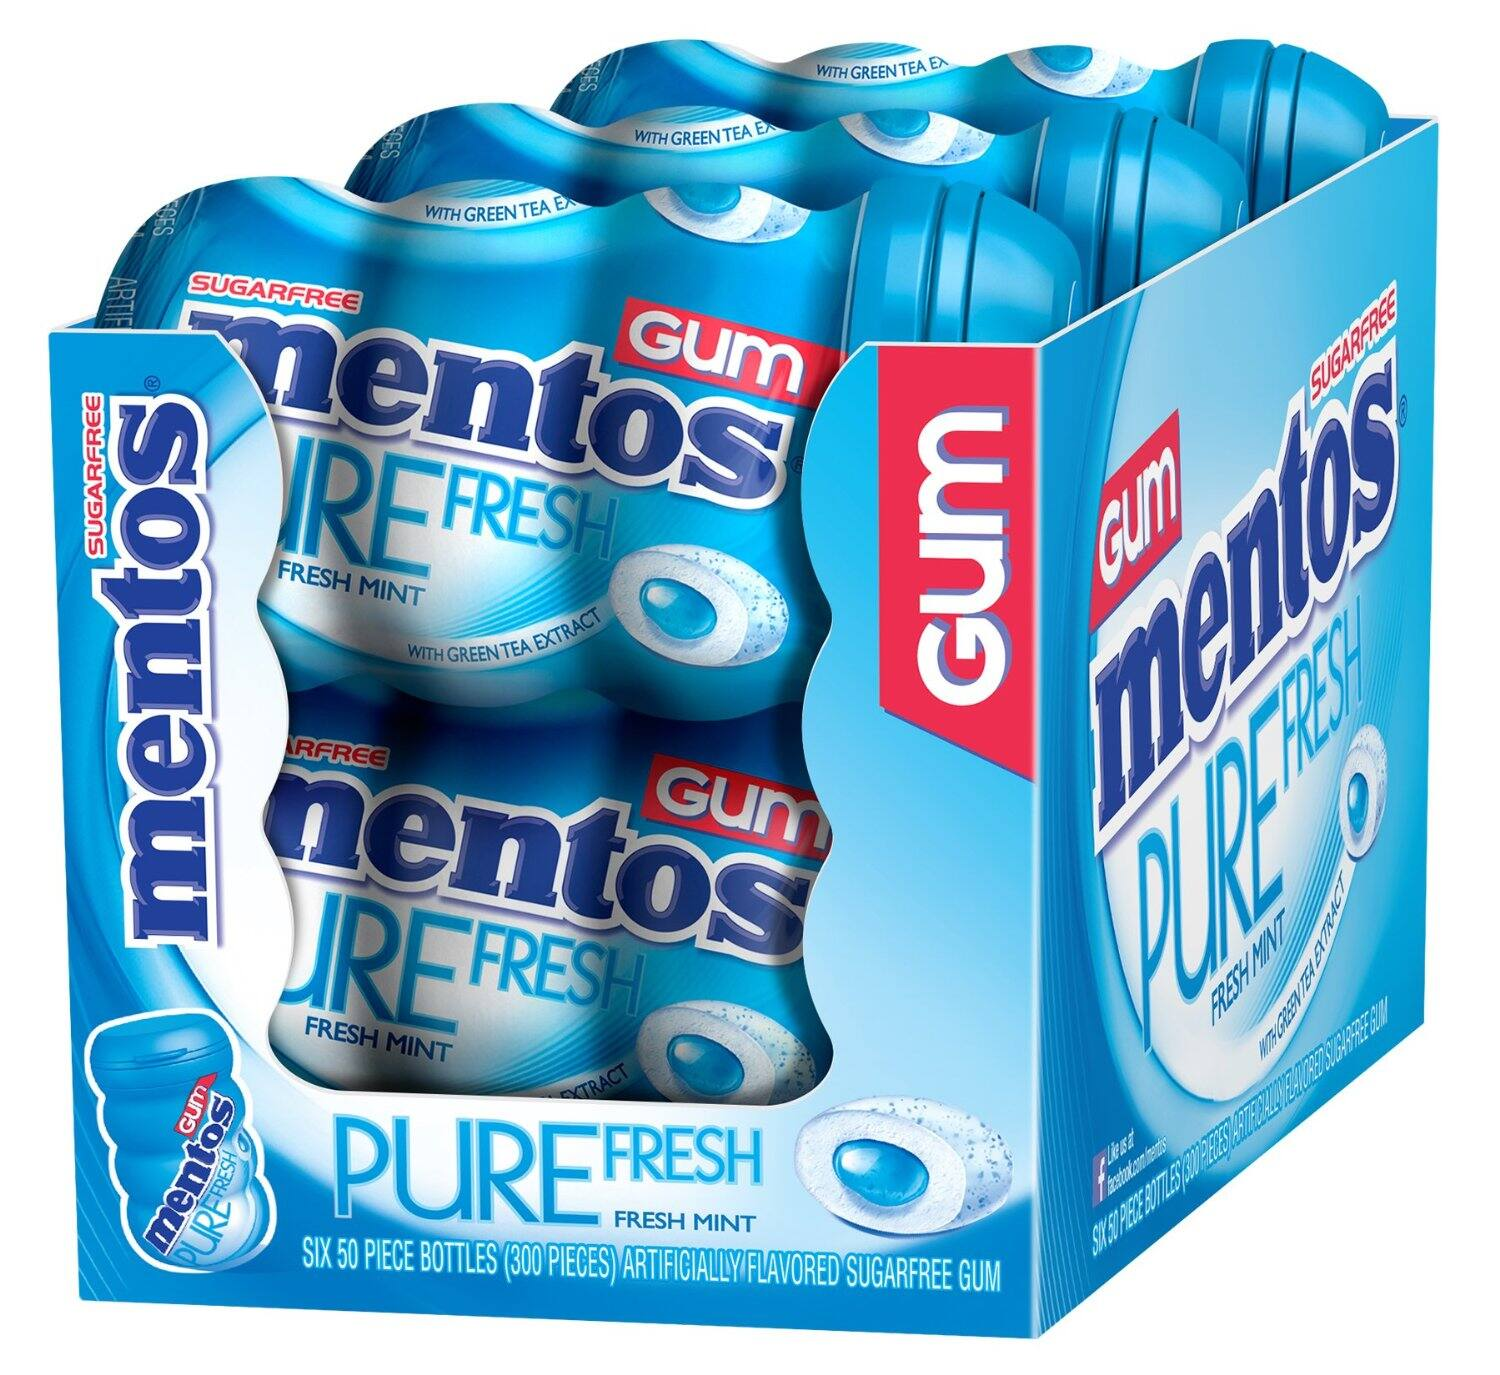 Mentos Gum Big Bottle Curvy, Pure Fresh Mint, (Pack of 6)  $10.50 or lower Shipped! Amazon Prime